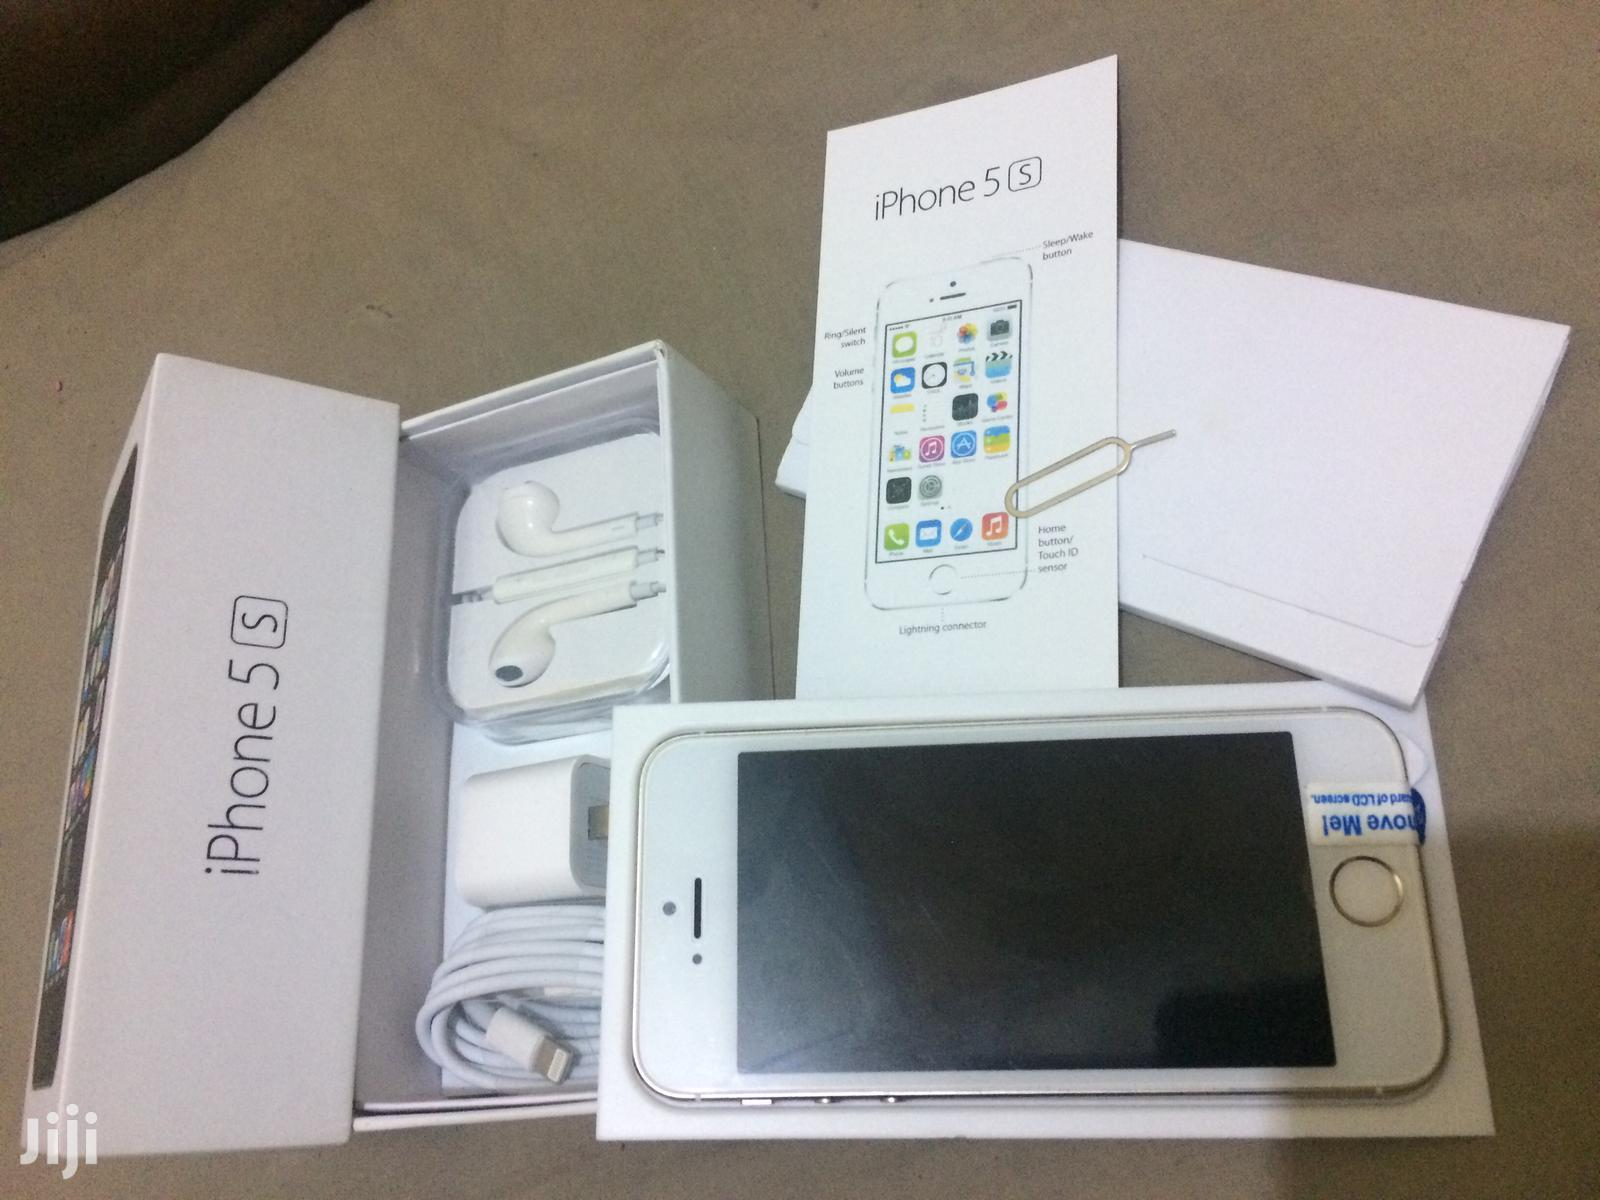 New Apple iPhone 5s 16 GB Gray   Mobile Phones for sale in Accra Metropolitan, Greater Accra, Ghana